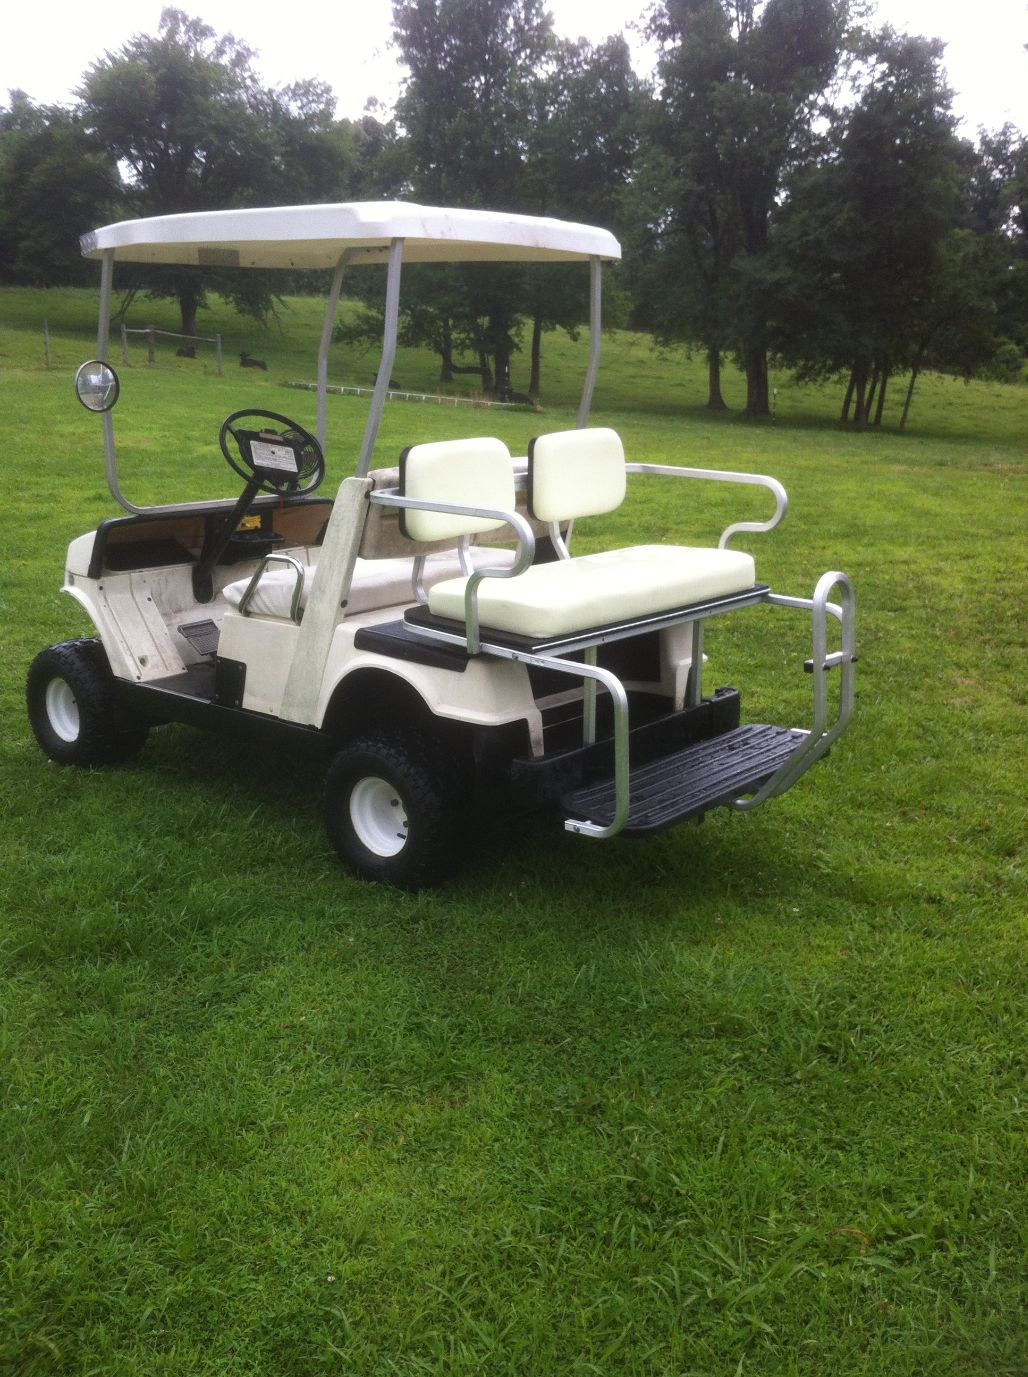 Watch likewise Yamaha G1 Golf Cart Parts besides Rearsea its in addition Homemade Club Car Lift Kit additionally Yamaha G2 Golf Cart Roof. on yamaha g9 lift kit